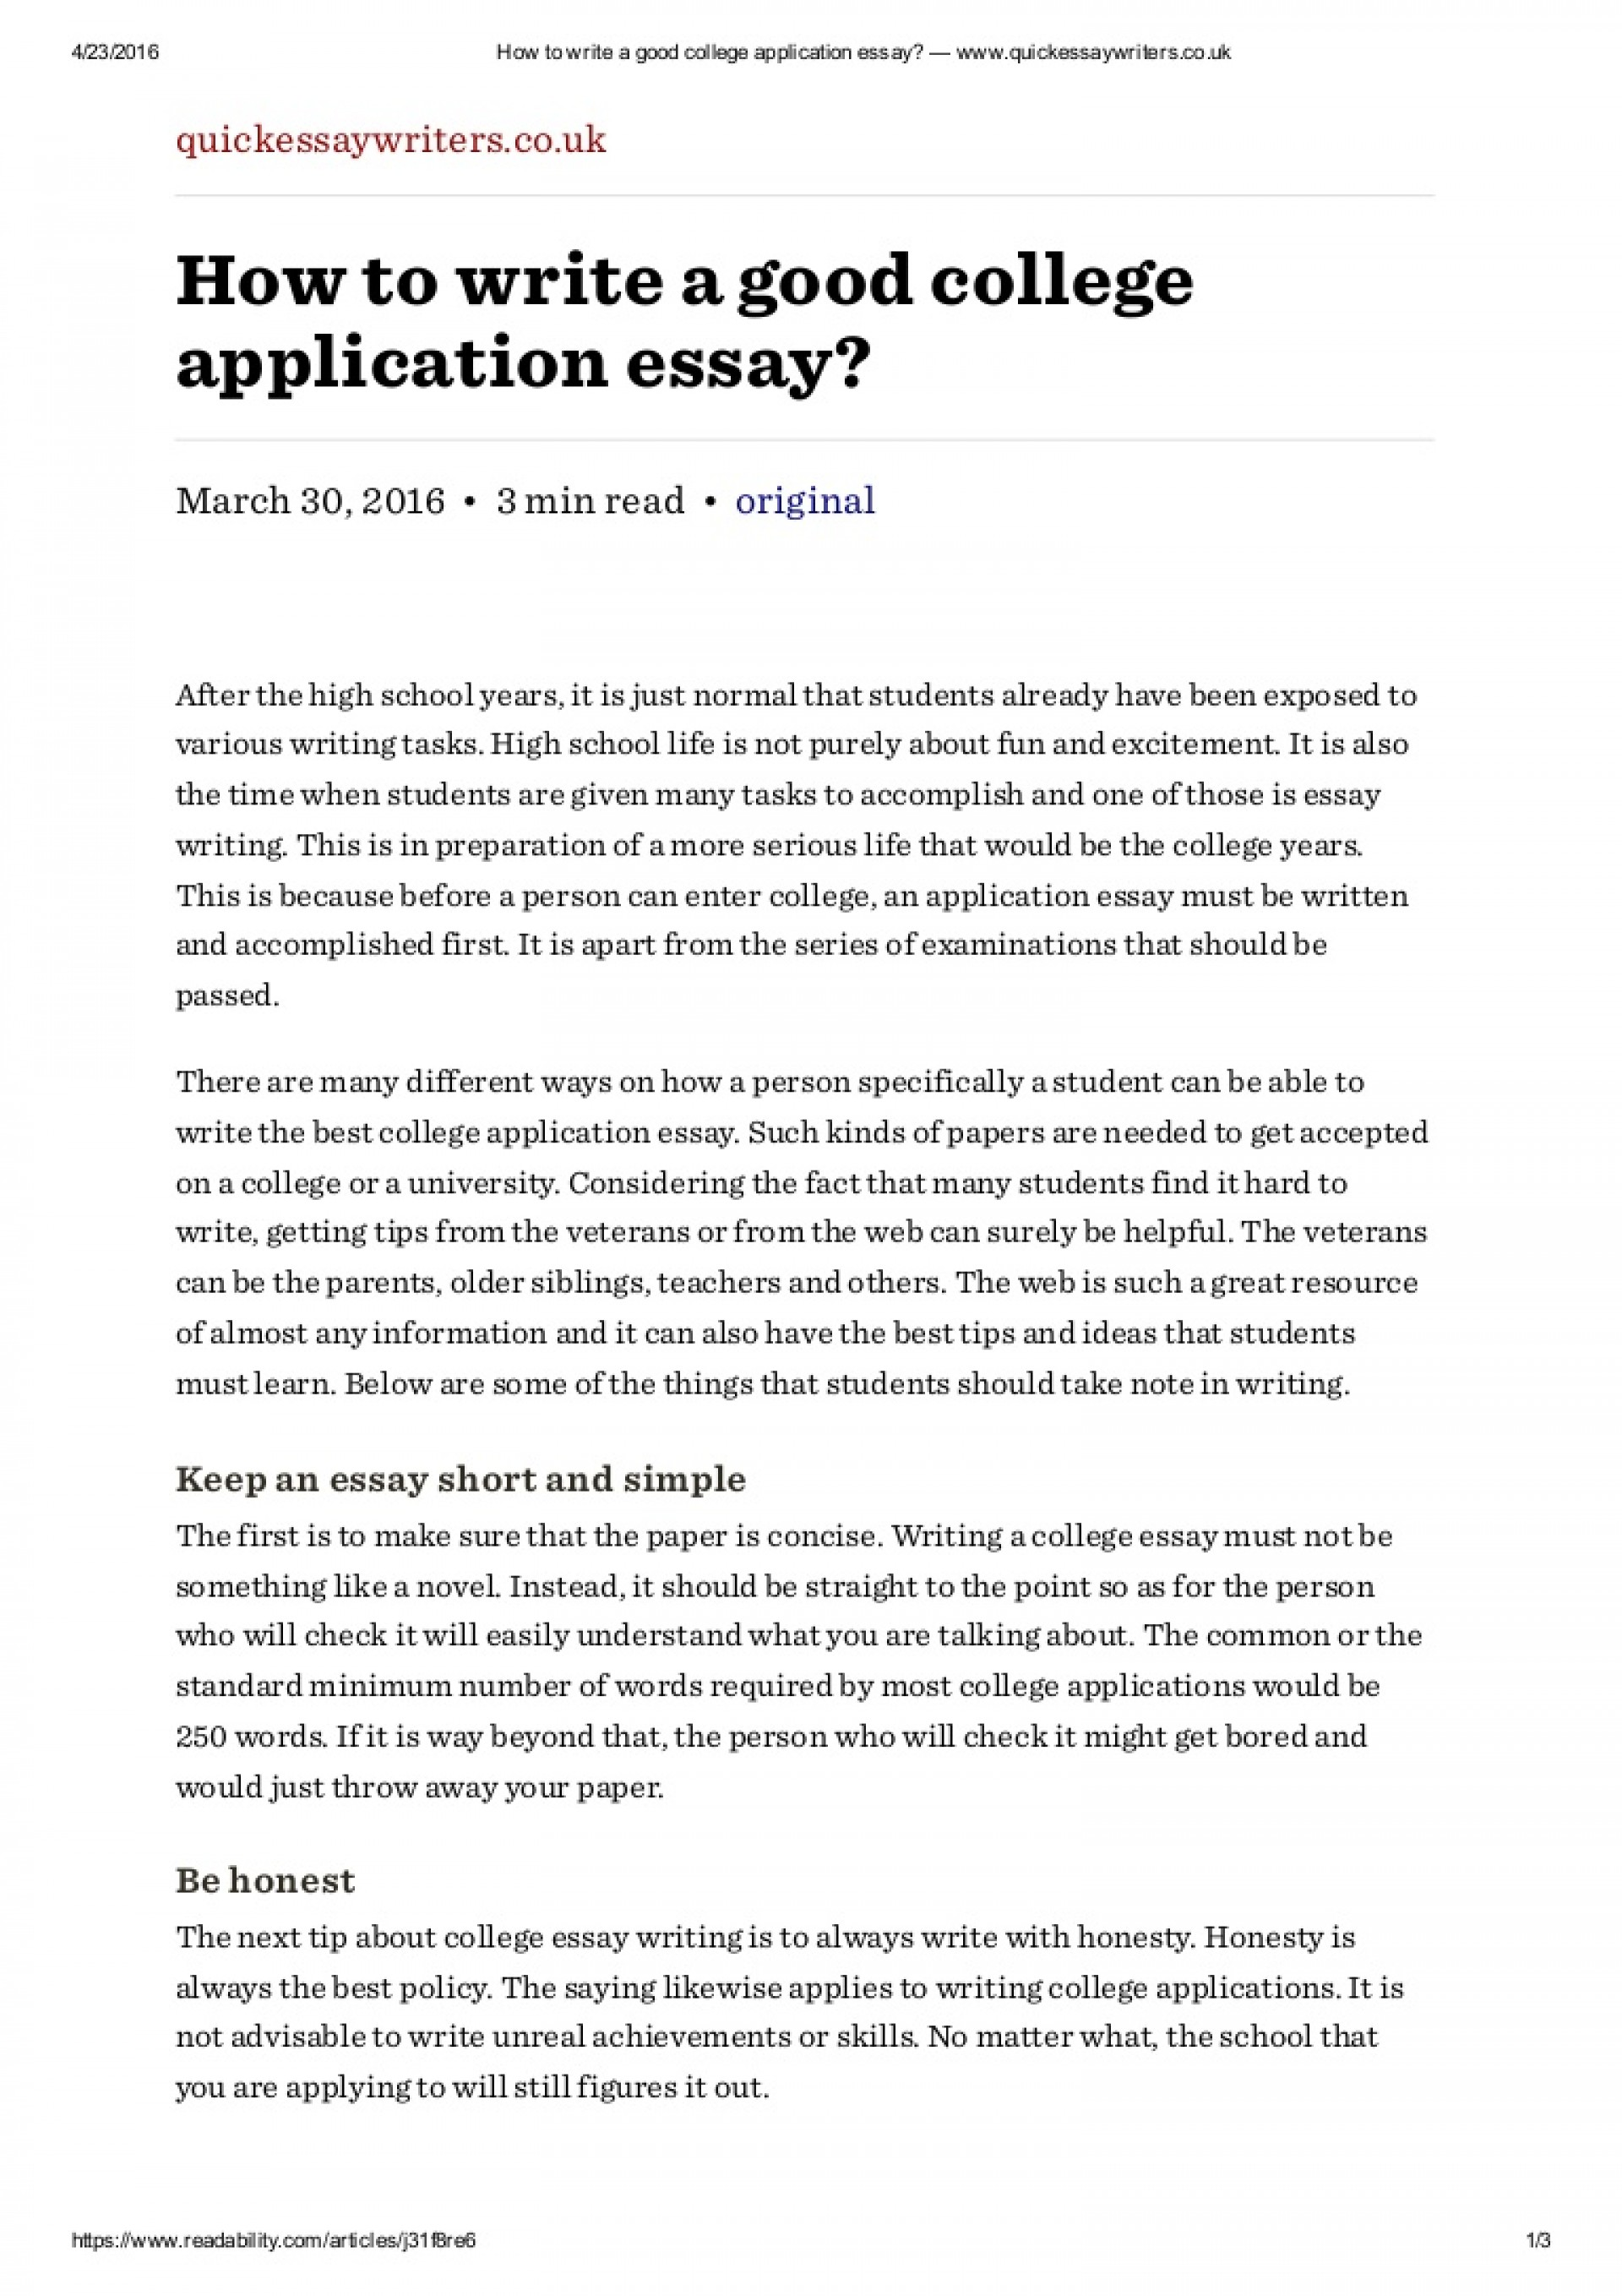 009 Howtowriteagoodcollegeapplicationessaywww Thumbnail Essay Example Writing College Rare A Application Tips For Great How To Write That Stands Out Of 1920